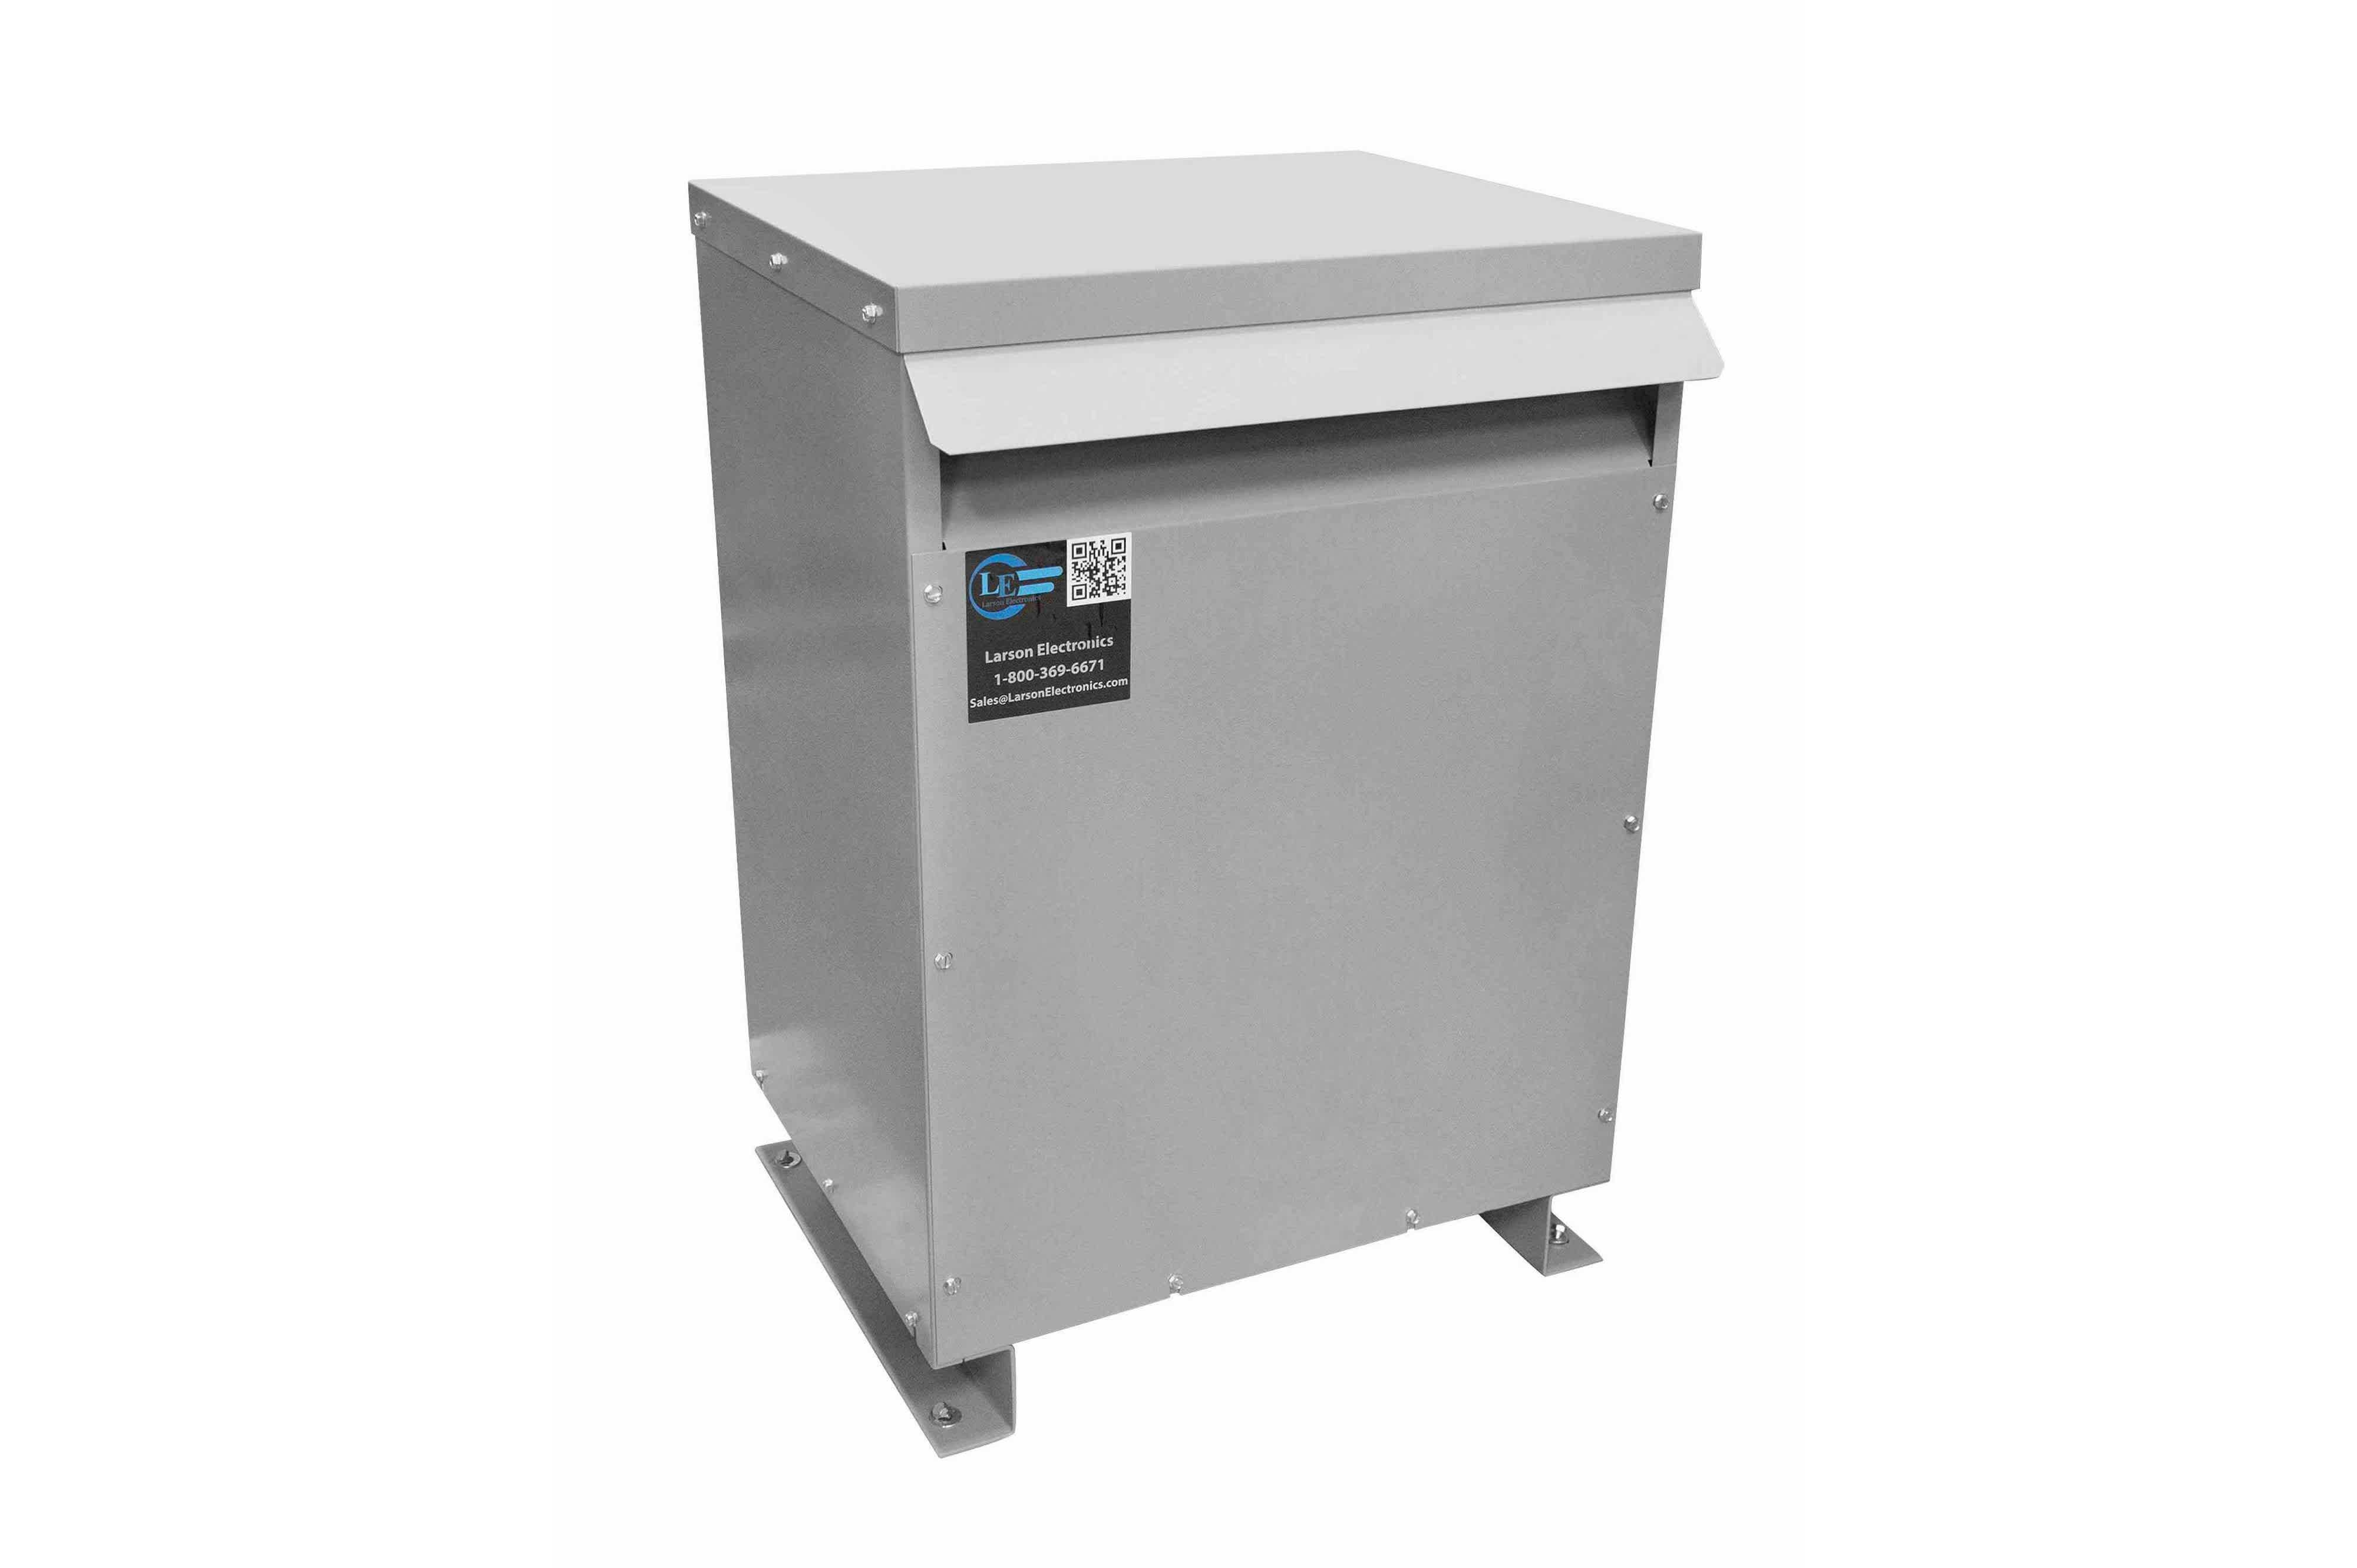 20 kVA 3PH Isolation Transformer, 440V Wye Primary, 240V/120 Delta Secondary, N3R, Ventilated, 60 Hz